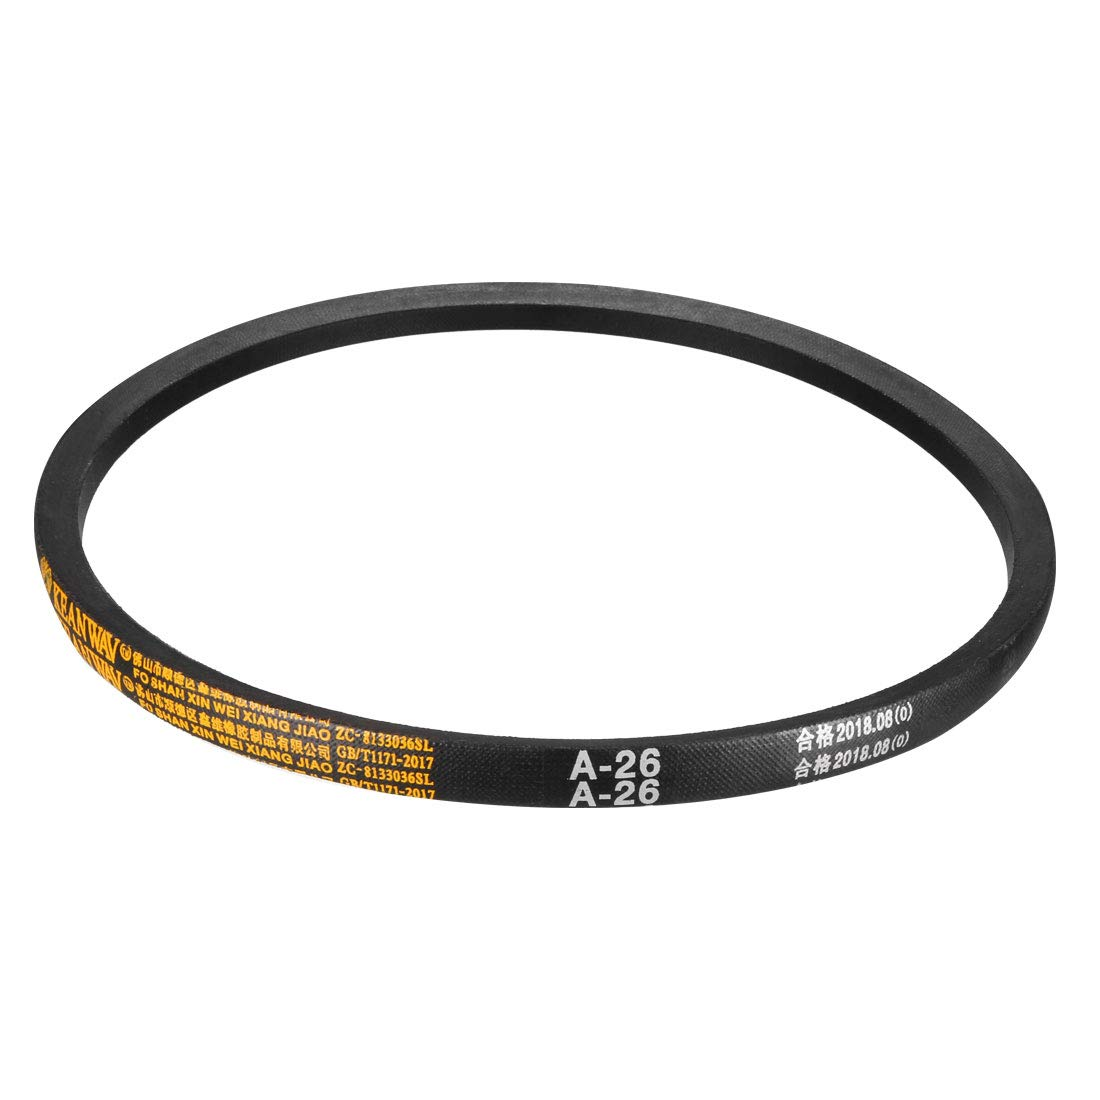 sourcing map A-25 Drive V-Belt Girth 25-inch Industrial Power Rubber Transmission Belt